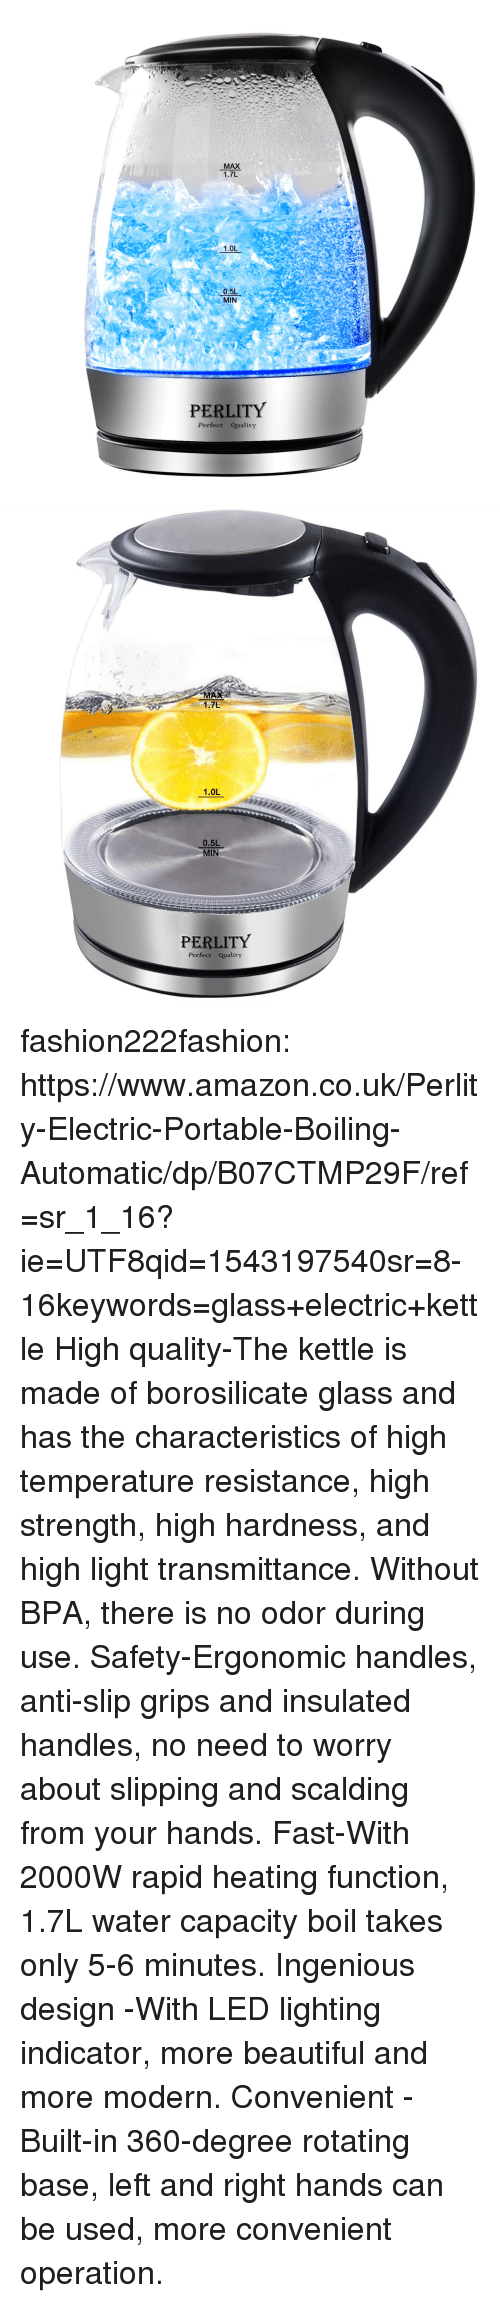 No Need To Worry: MAX  1.7L  1.0L  0.5L  MIN  PERLITY  Perfect Quality   MA  1.7L  1.0L  0.5L  MIN  PERLITY  Perfect Qualicy fashion222fashion: https://www.amazon.co.uk/Perlity-Electric-Portable-Boiling-Automatic/dp/B07CTMP29F/ref=sr_1_16?ie=UTF8qid=1543197540sr=8-16keywords=glass+electric+kettle   High quality-The kettle is made of borosilicate glass and has the characteristics of high temperature resistance, high strength, high hardness, and high light transmittance. Without BPA, there is no odor during use. Safety-Ergonomic handles, anti-slip grips and insulated handles, no need to worry about slipping and scalding from your hands. Fast-With 2000W rapid heating function, 1.7L water capacity boil takes only 5-6 minutes. Ingenious design -With LED lighting indicator, more beautiful and more modern. Convenient -Built-in 360-degree rotating base, left and right hands can be used, more convenient operation.